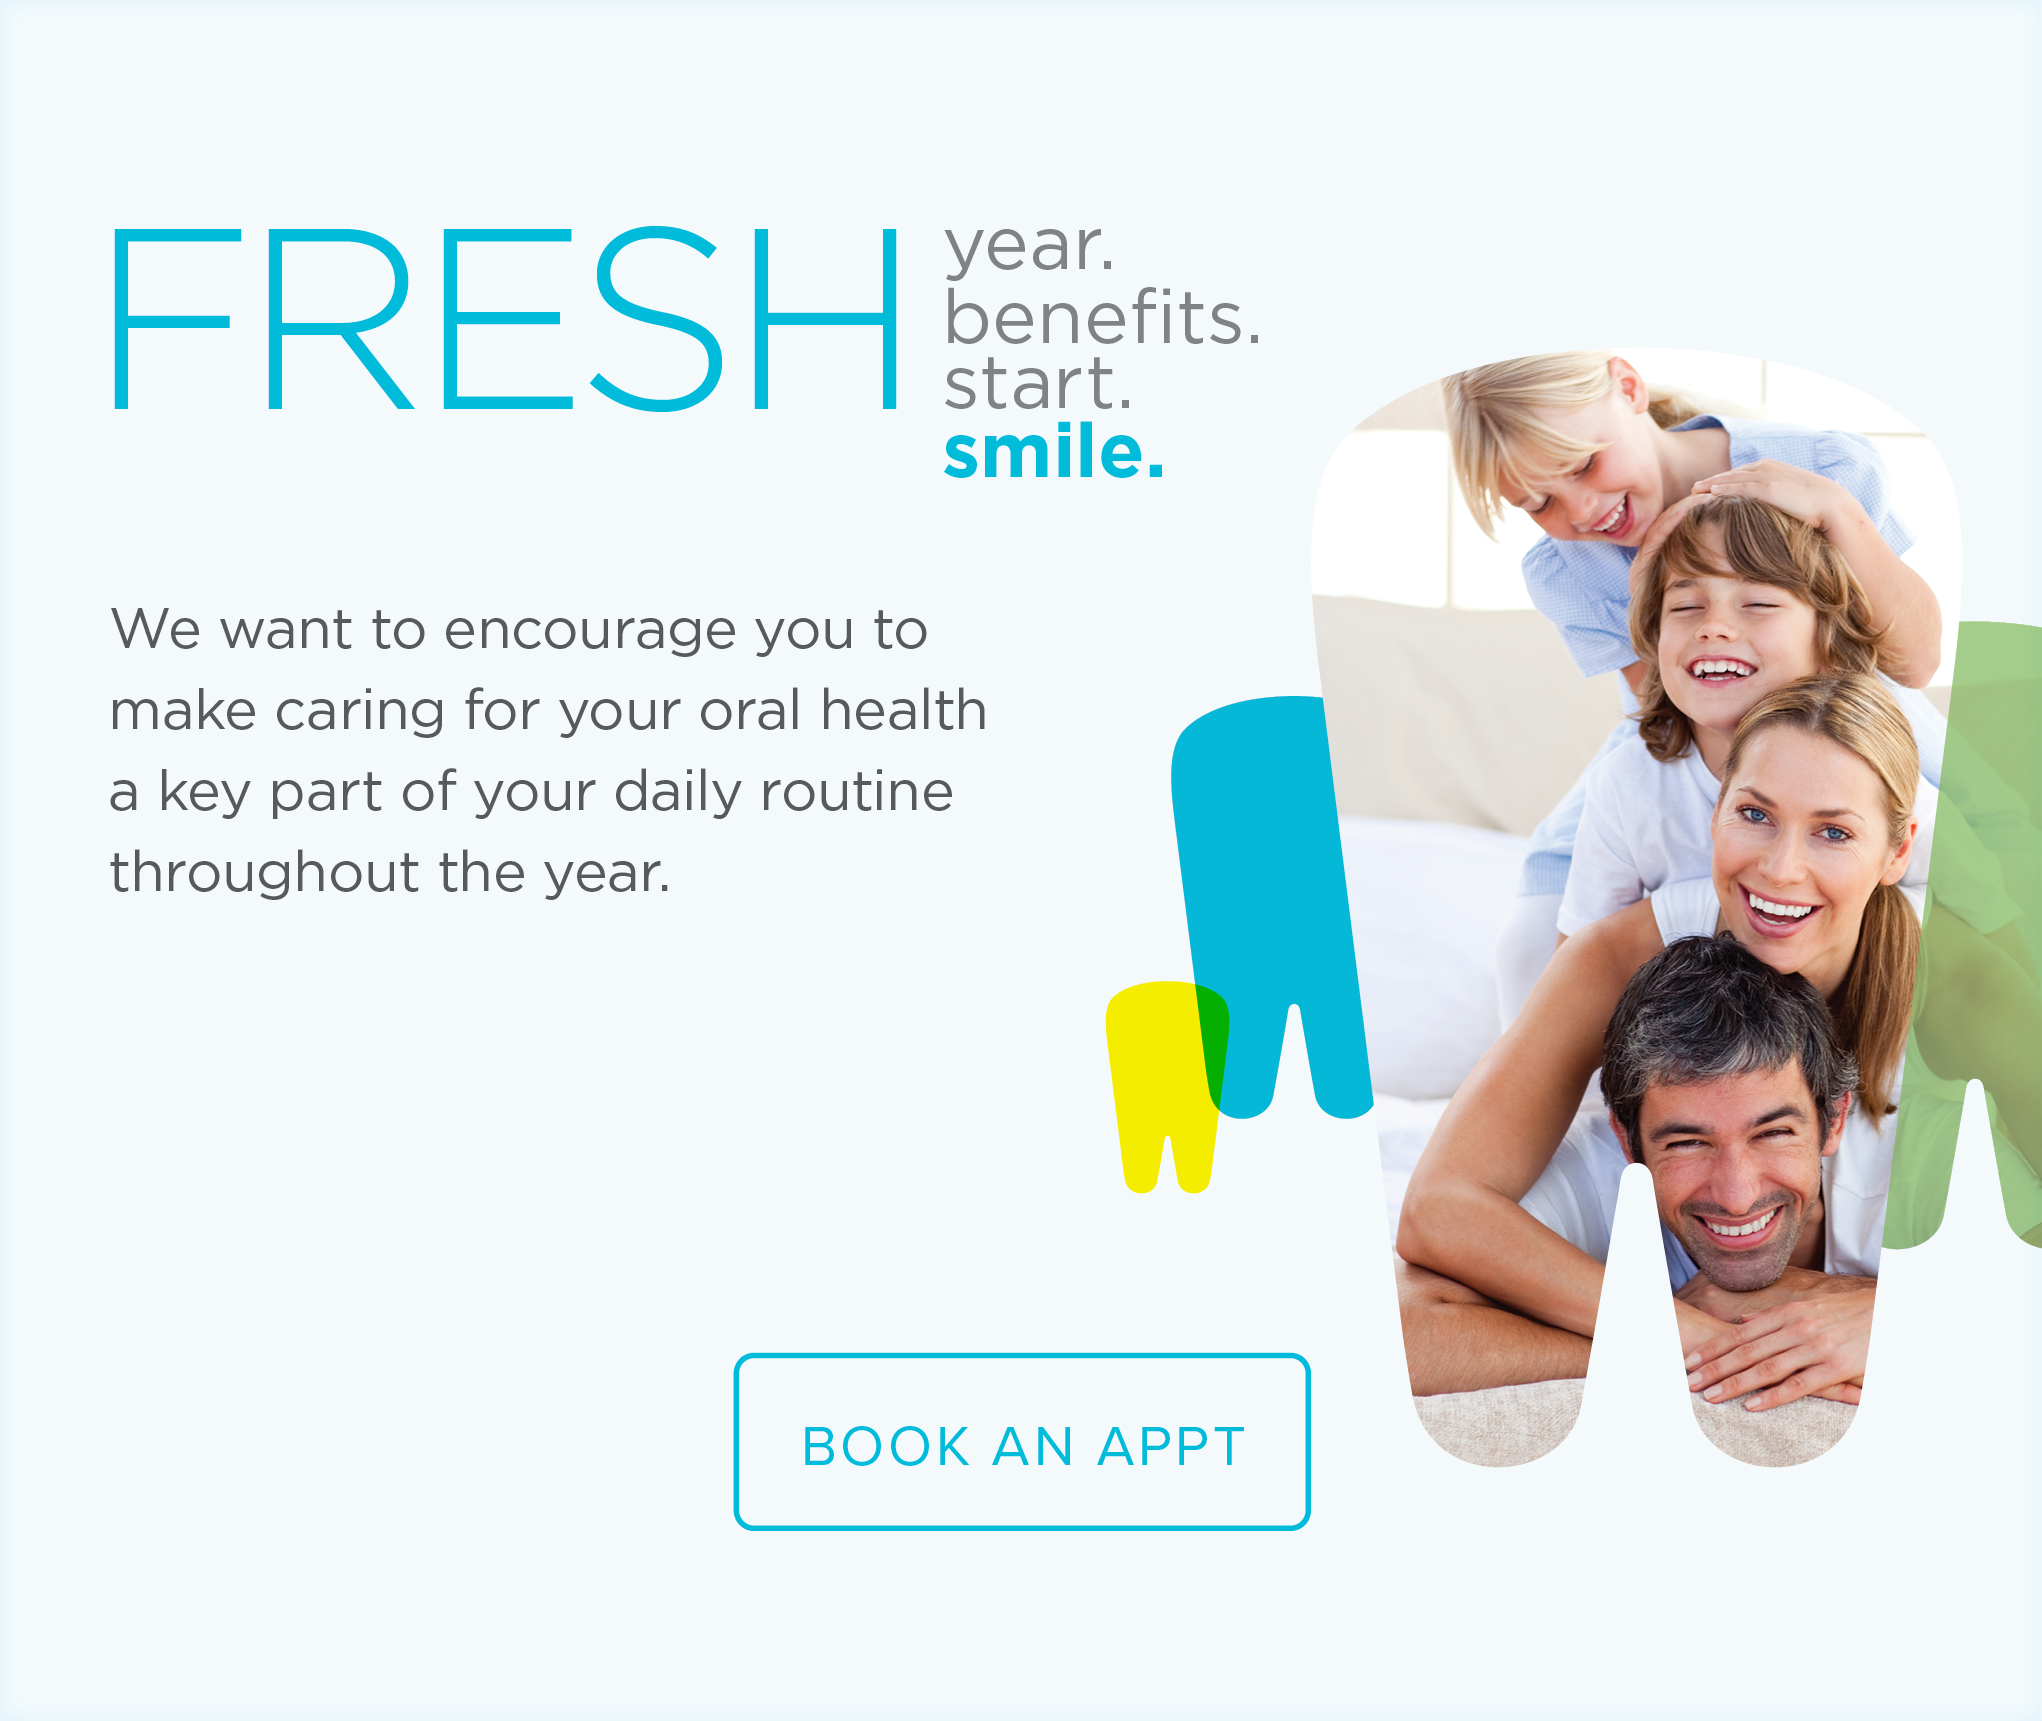 Baton Rouge Modern Dentistry - Make the Most of Your Benefits